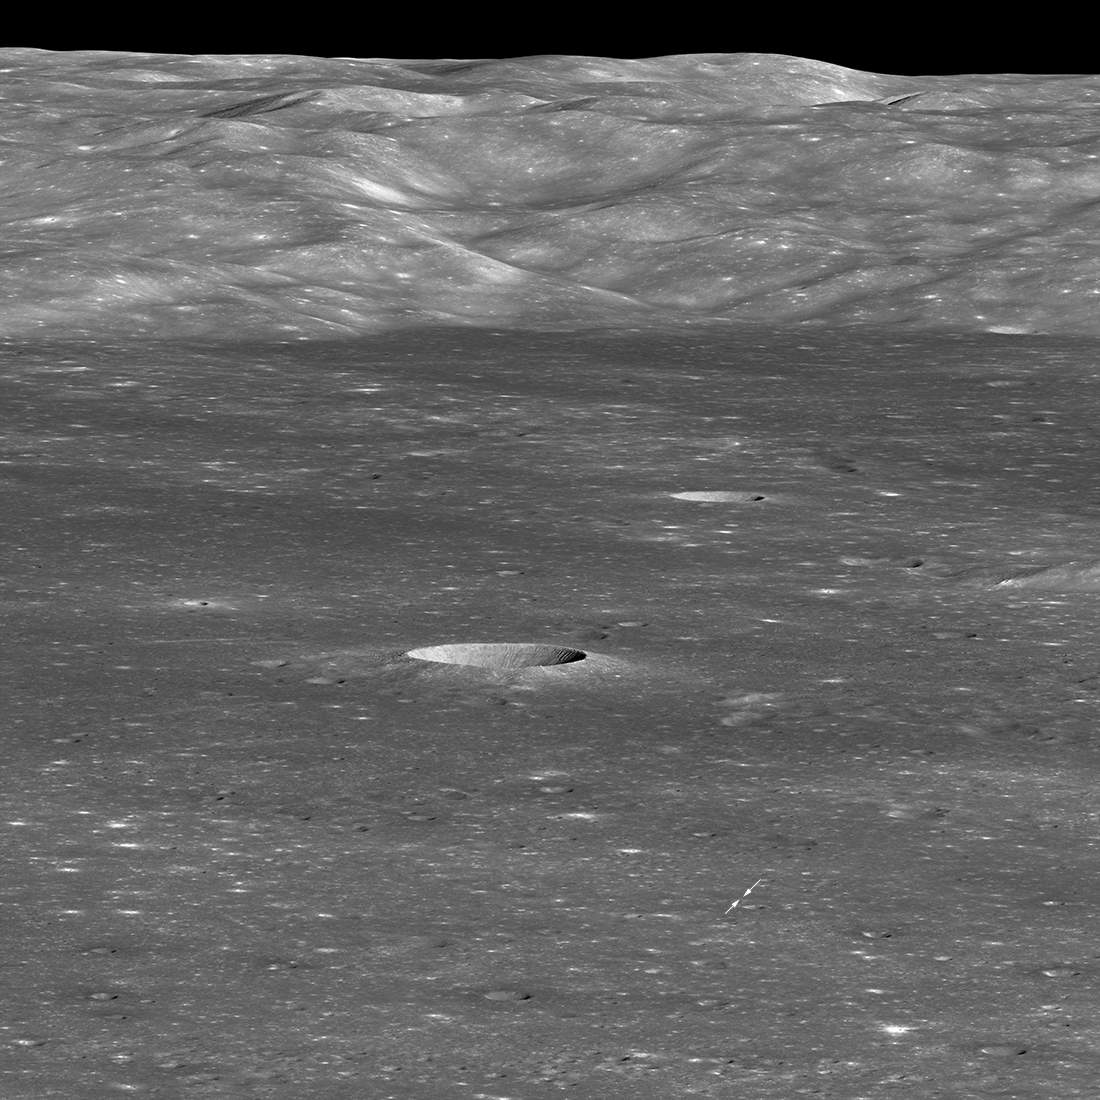 Chang'e-4 from LRO (January 30, 2019)